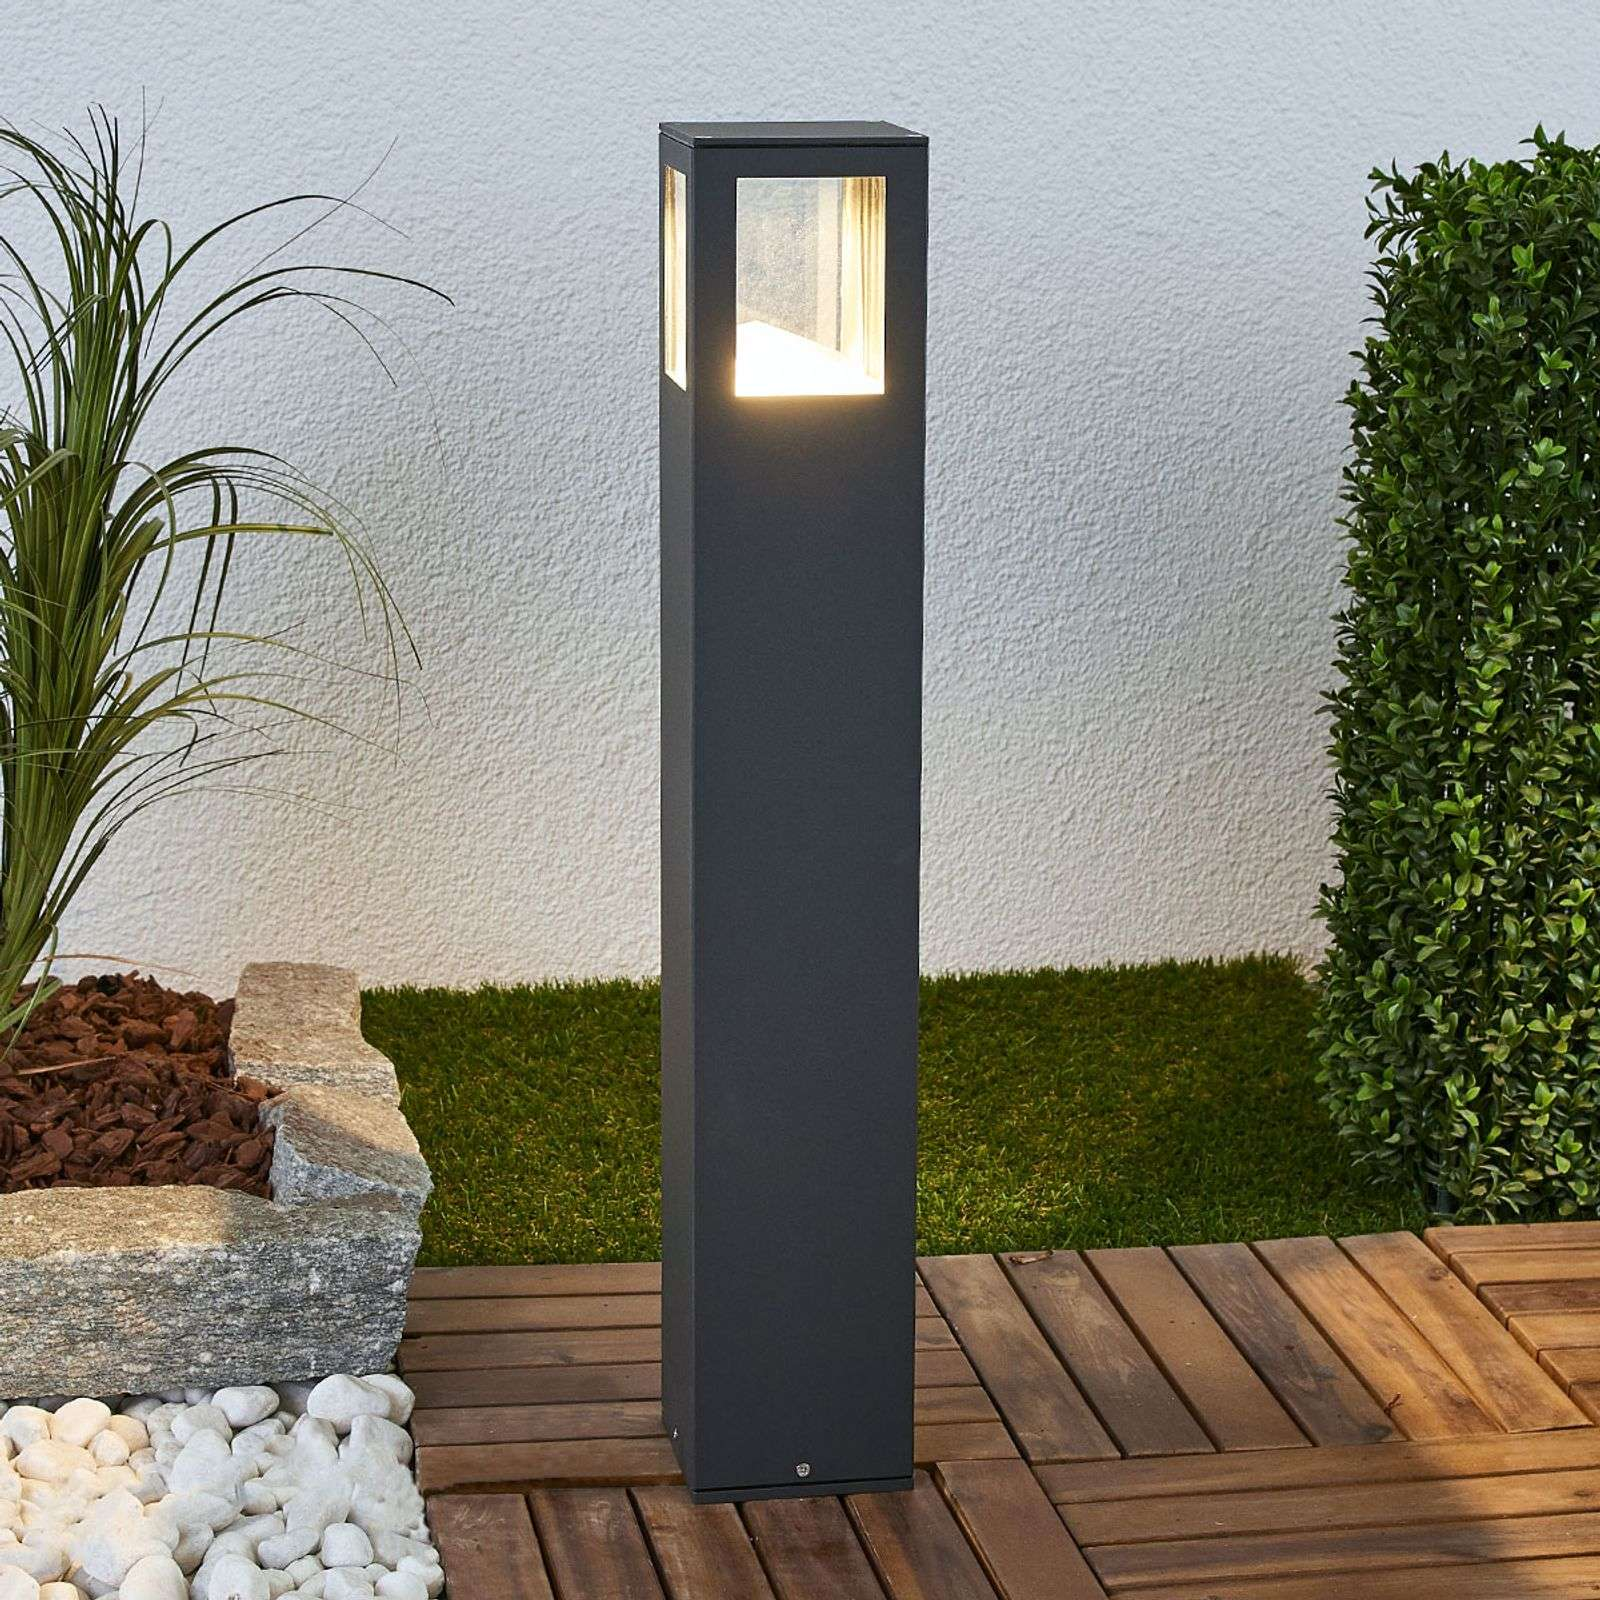 Baliza LED Nicola rectangular, IP54